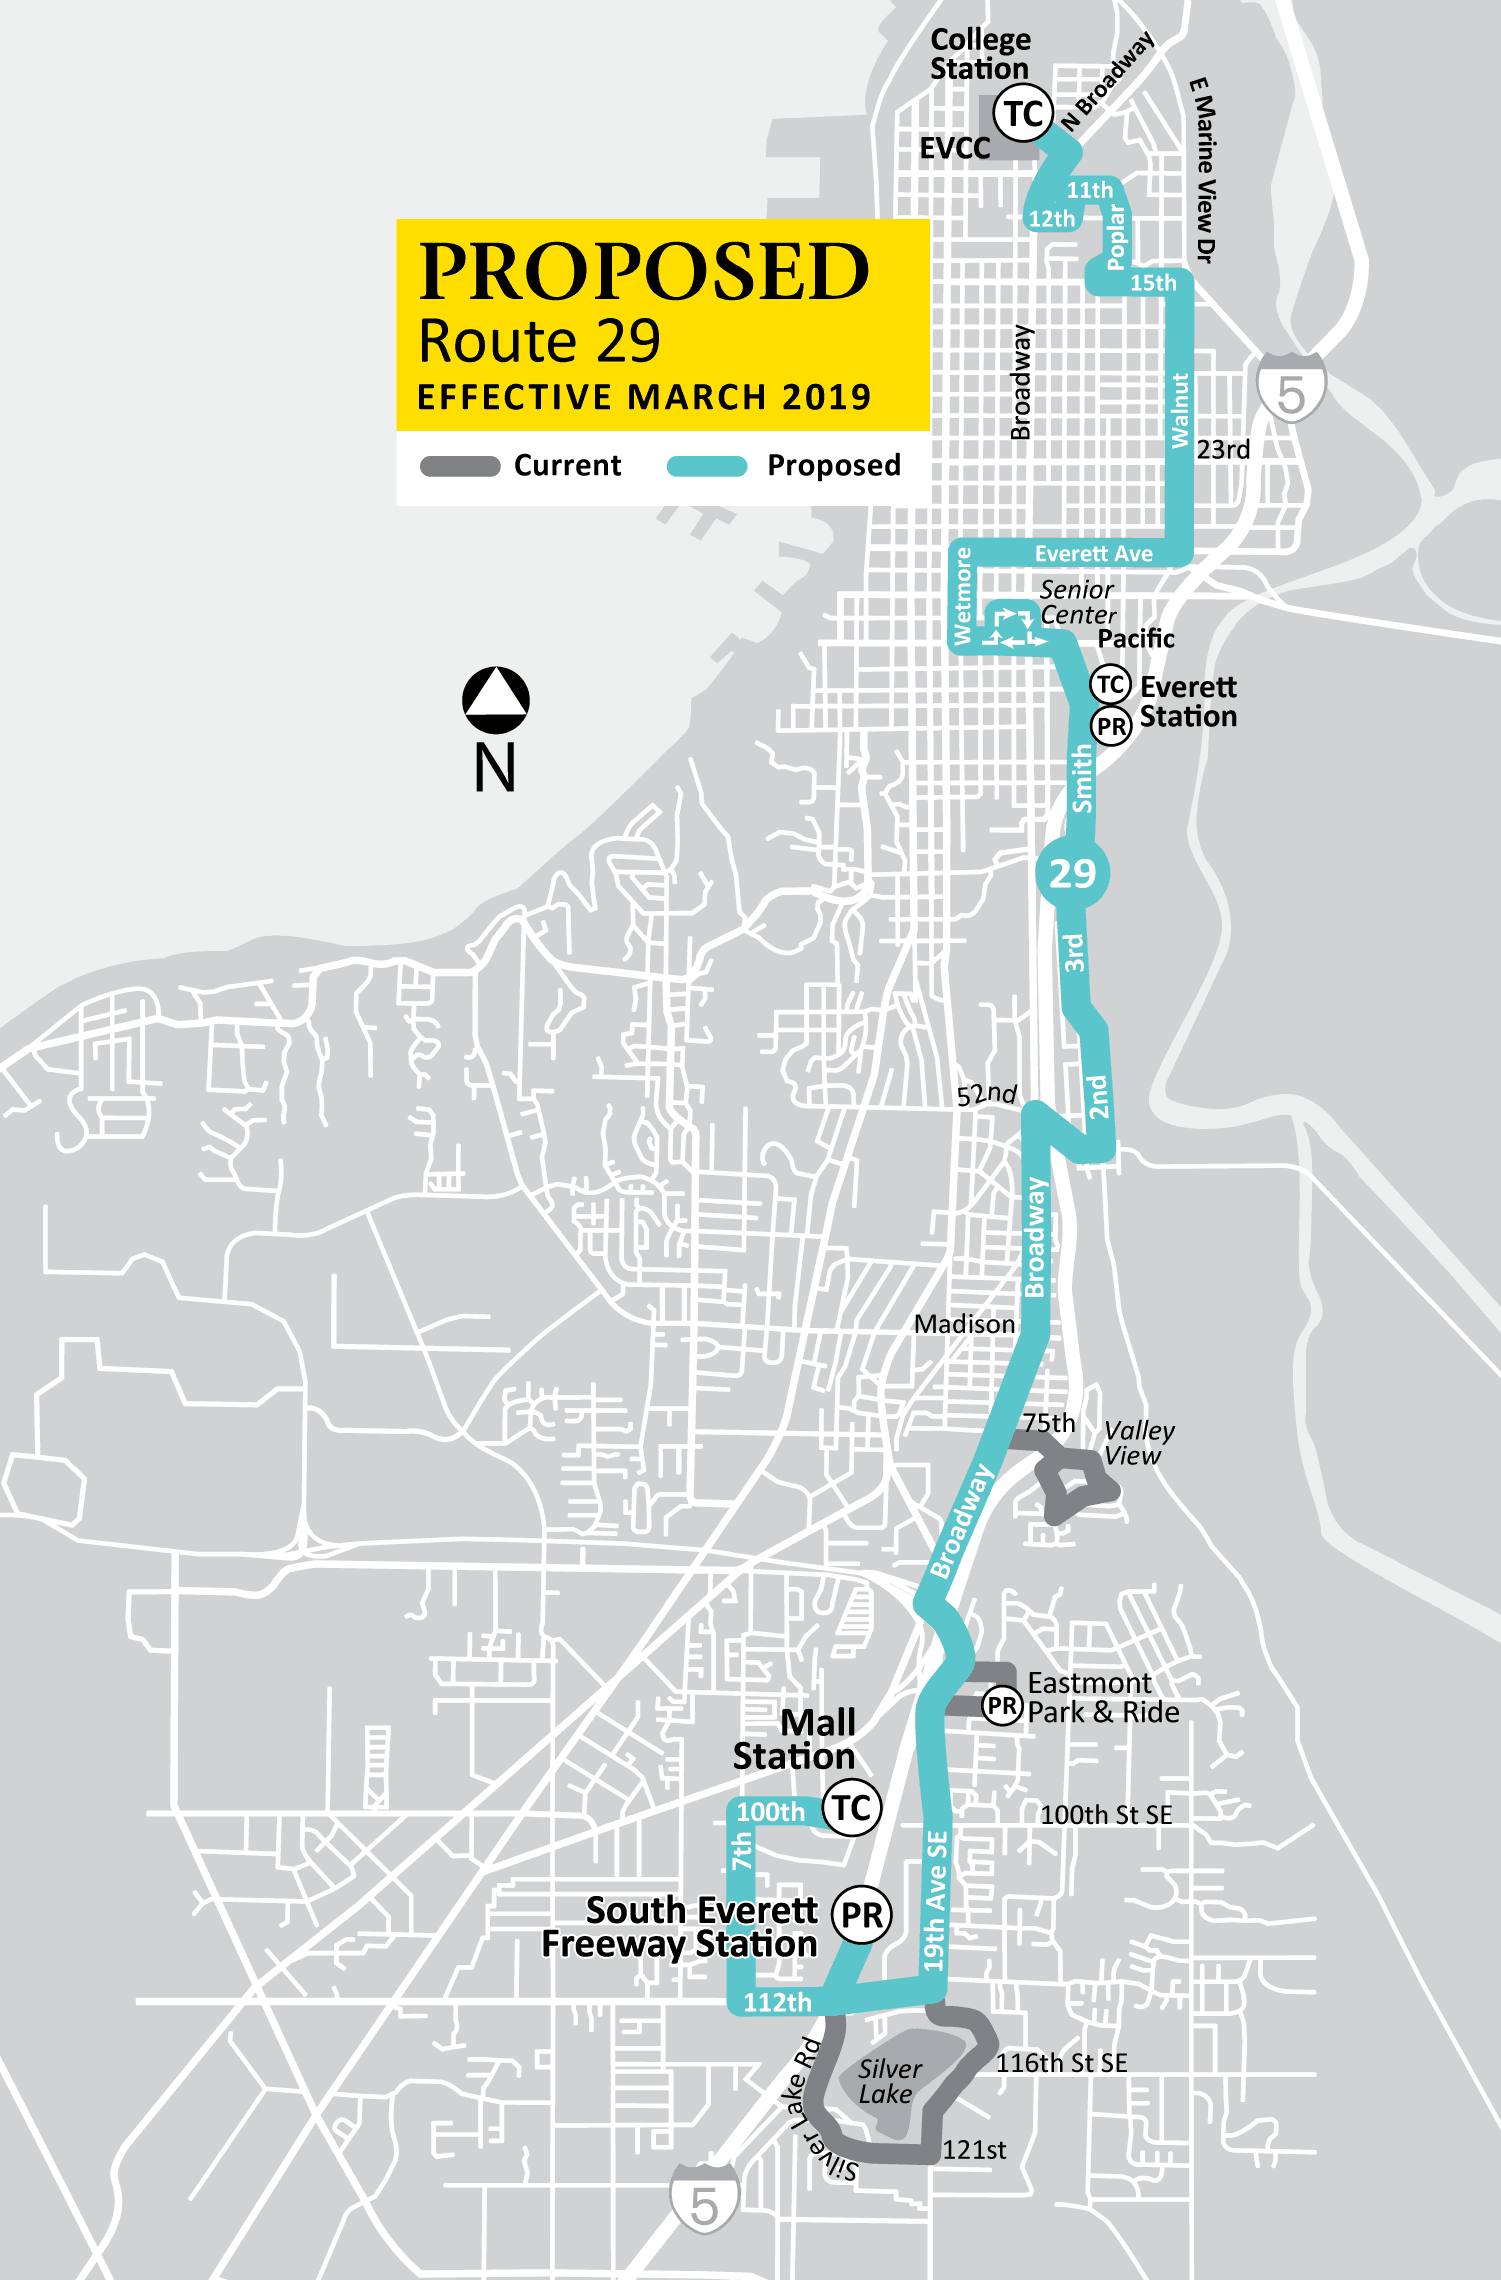 Proposed Route 29 Map